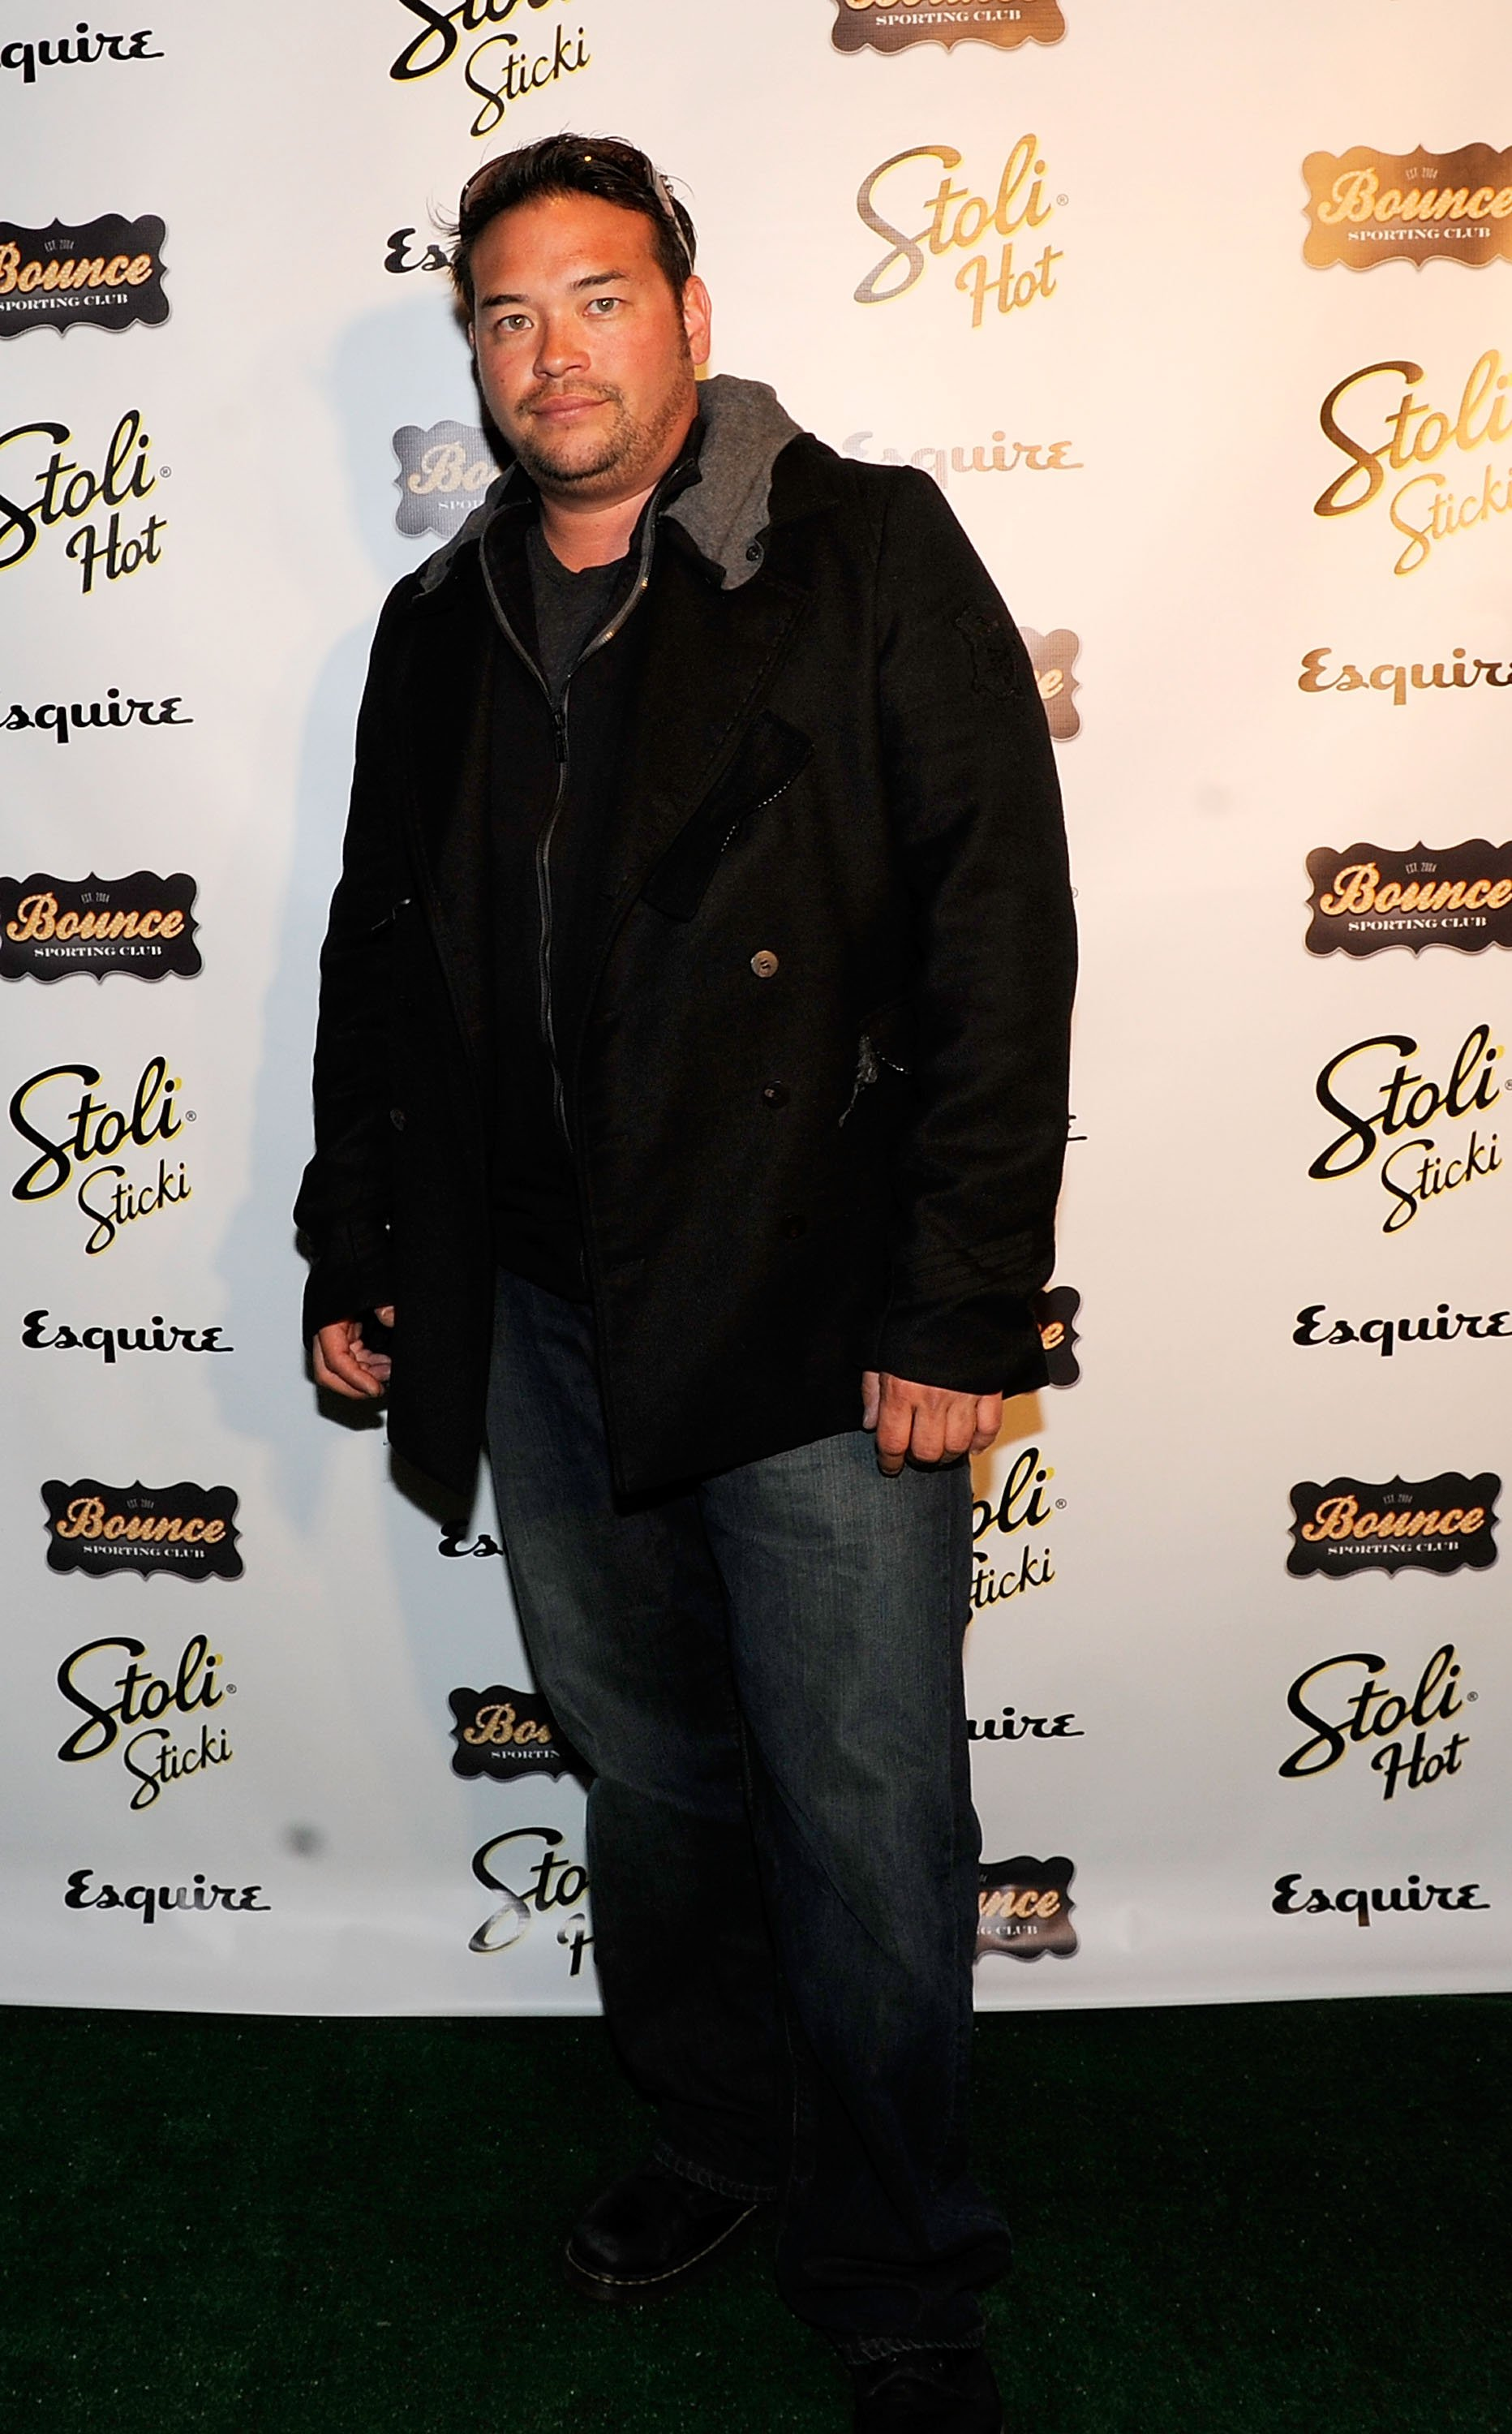 Jon Gosselin attends Toasting the NFL Craft Class kick-off in New York City on April 24, 2012 | Photo: Getty Images